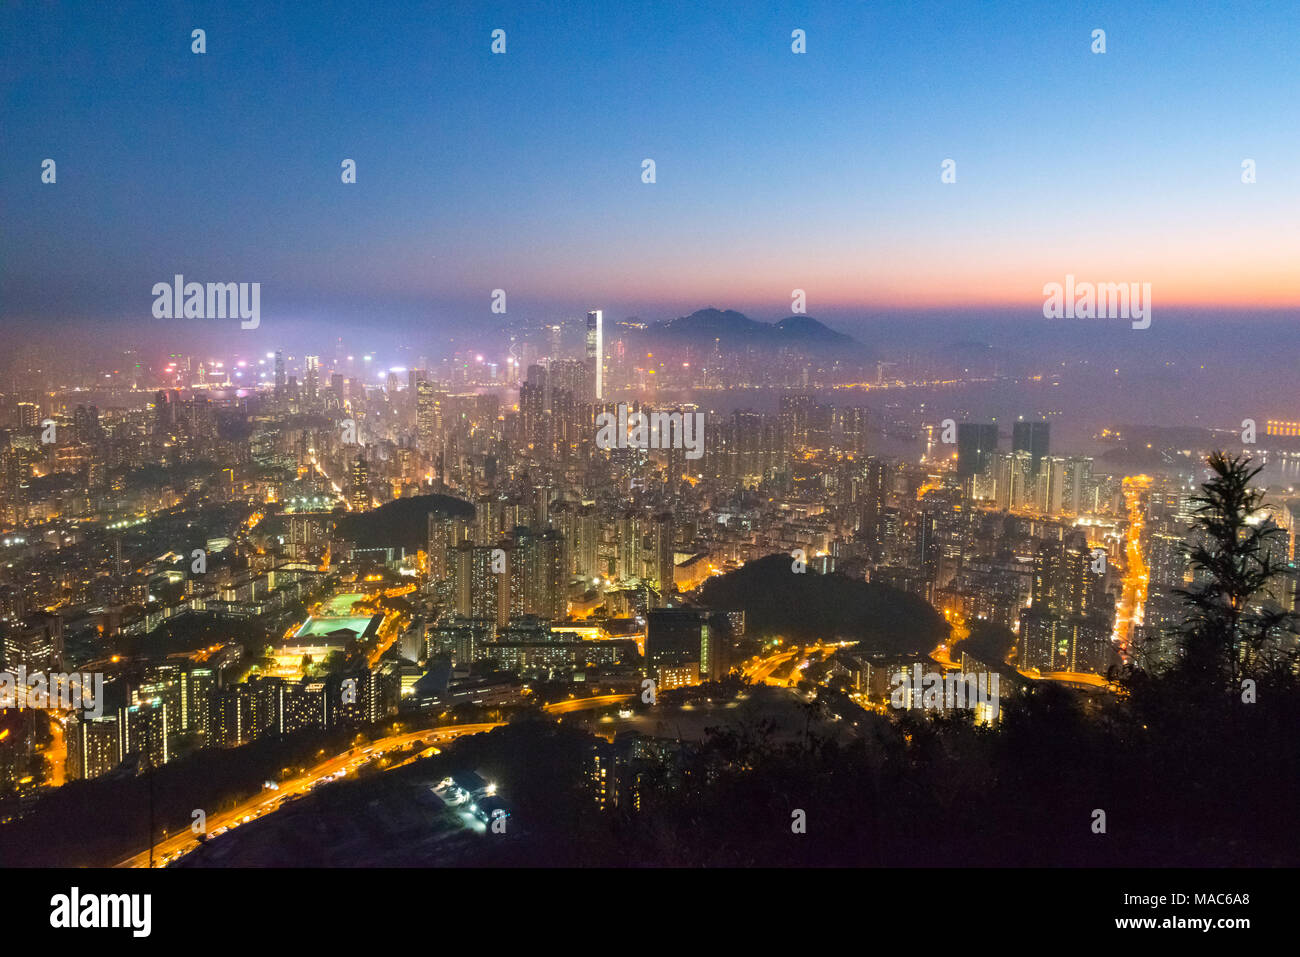 Sunset view of high rises by Victoria Bay dominated by International Financial Center, Hong Kong, China - Stock Image